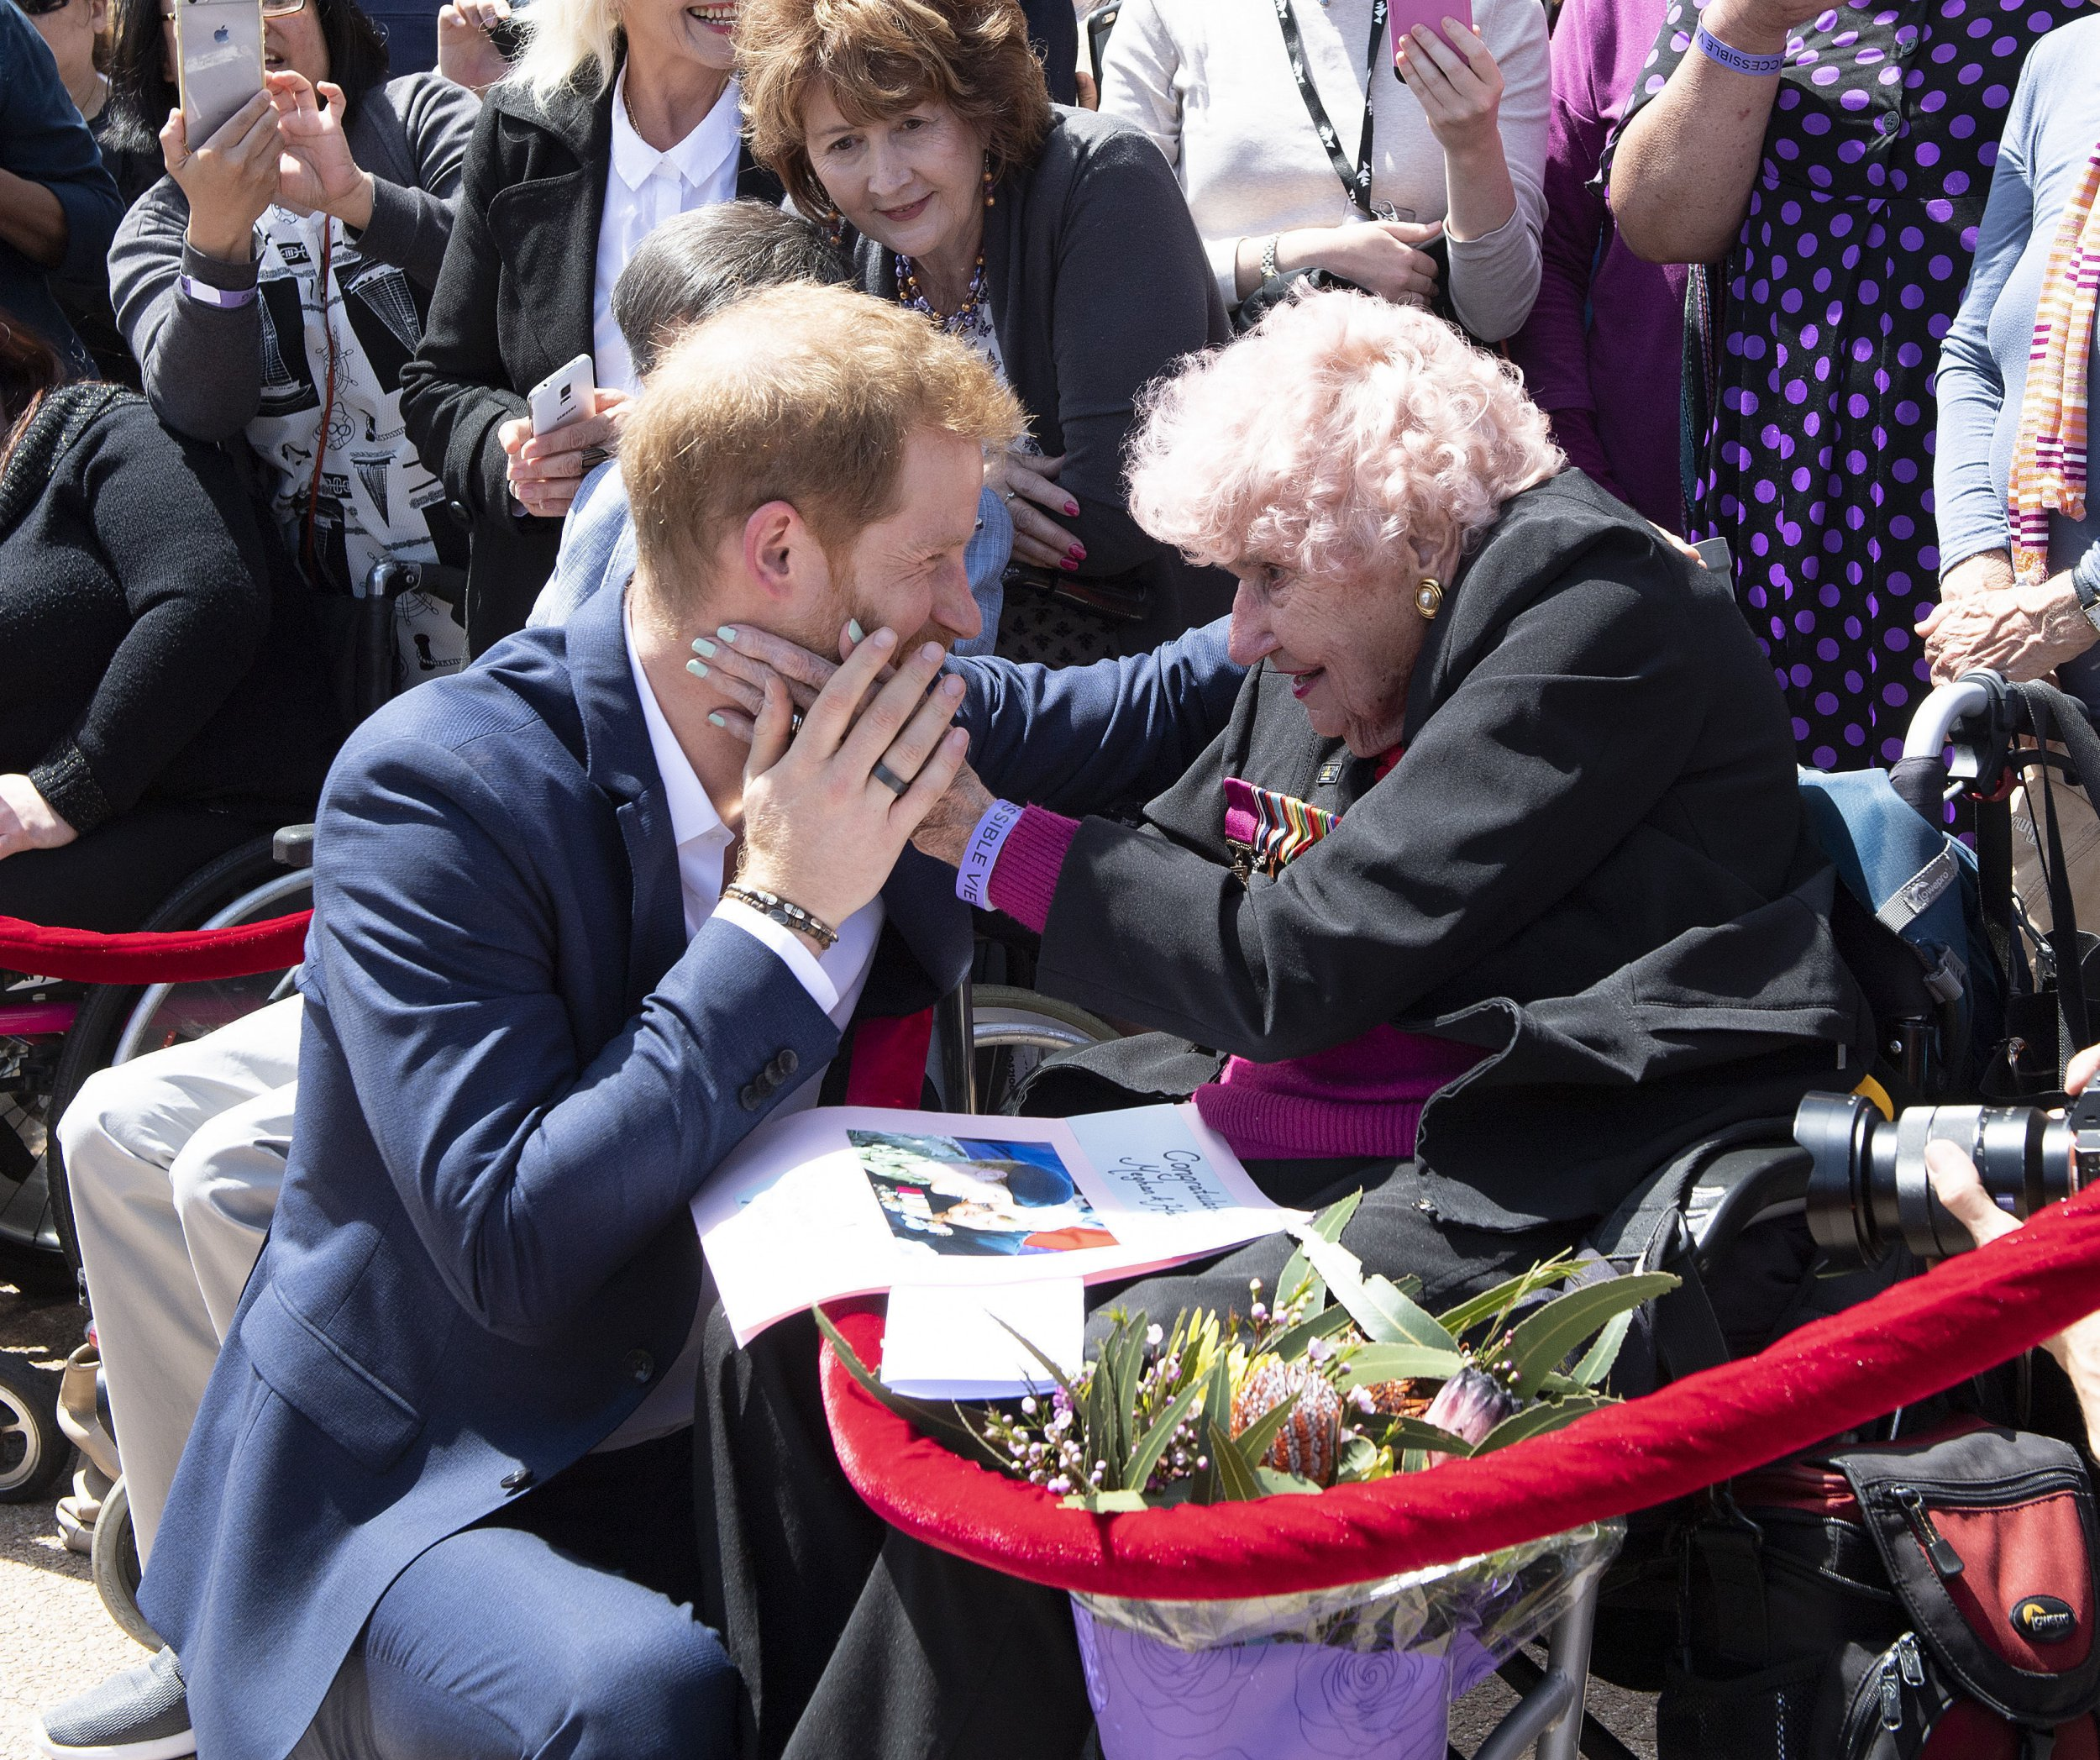 Prince Harry's biggest fan, 99, died days after receiving birthday card from him